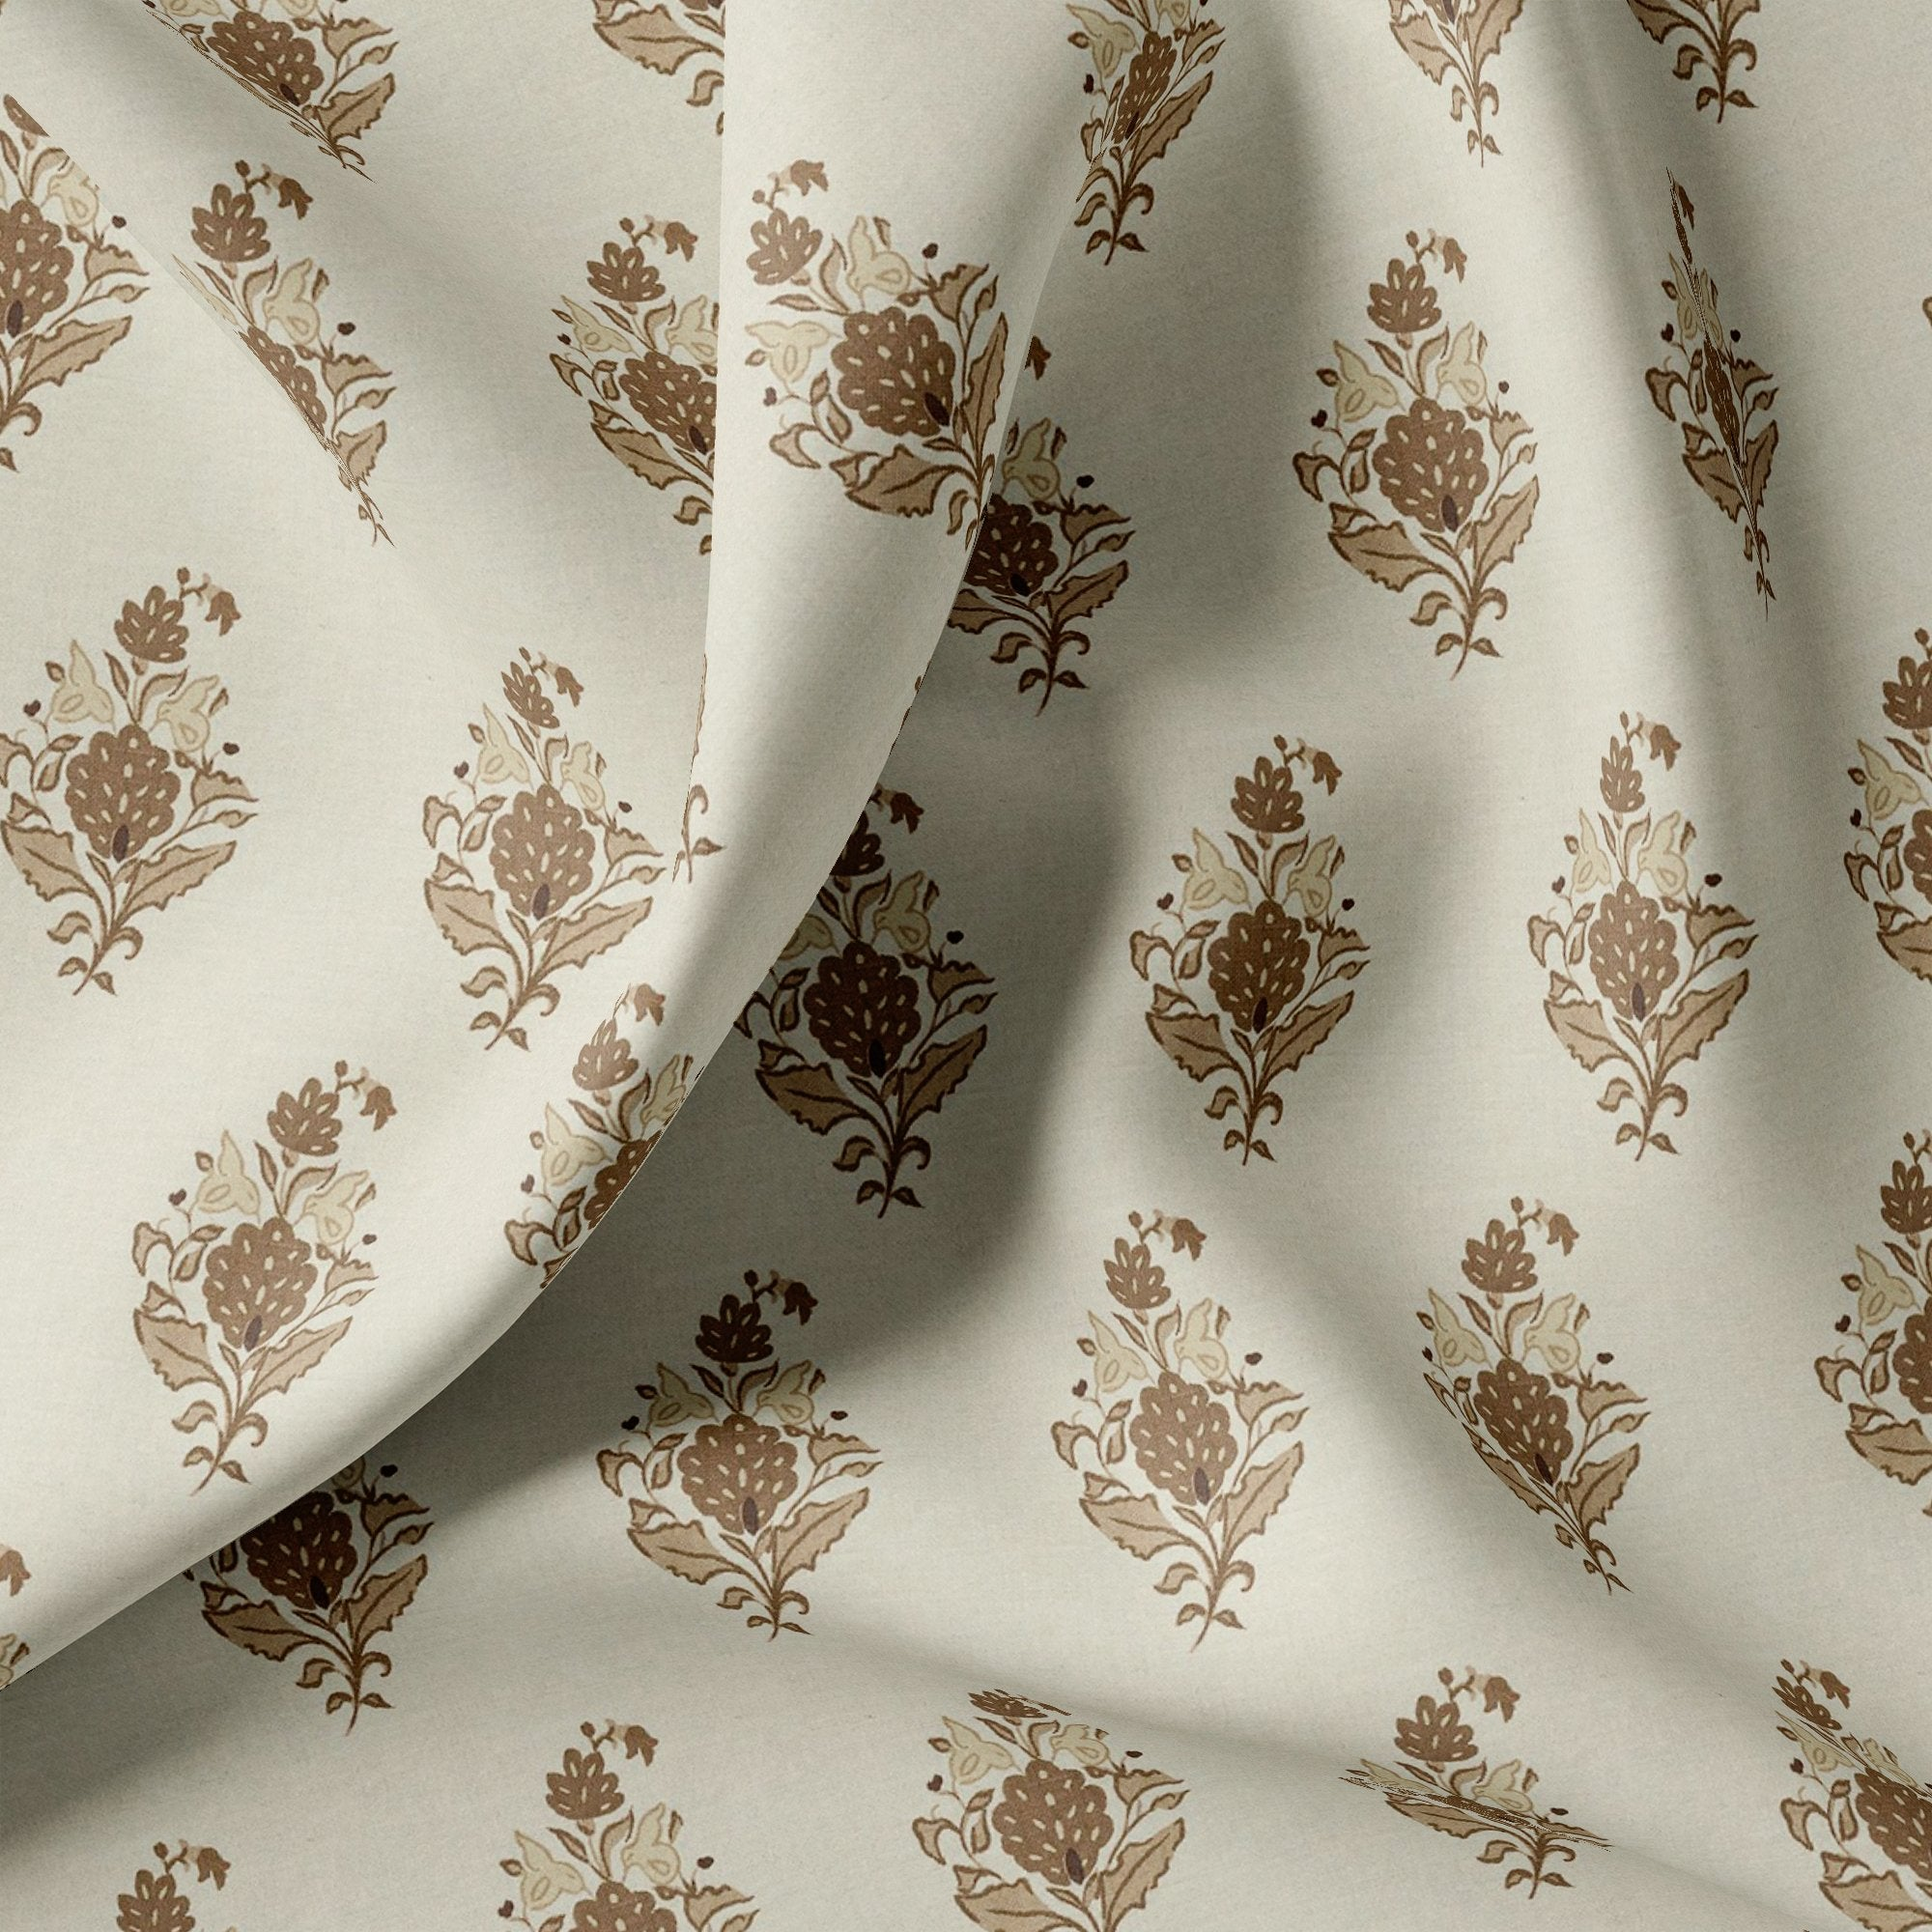 Seamless Flower Pattern Digital Printed Fabric - FAB VOGUE Studio